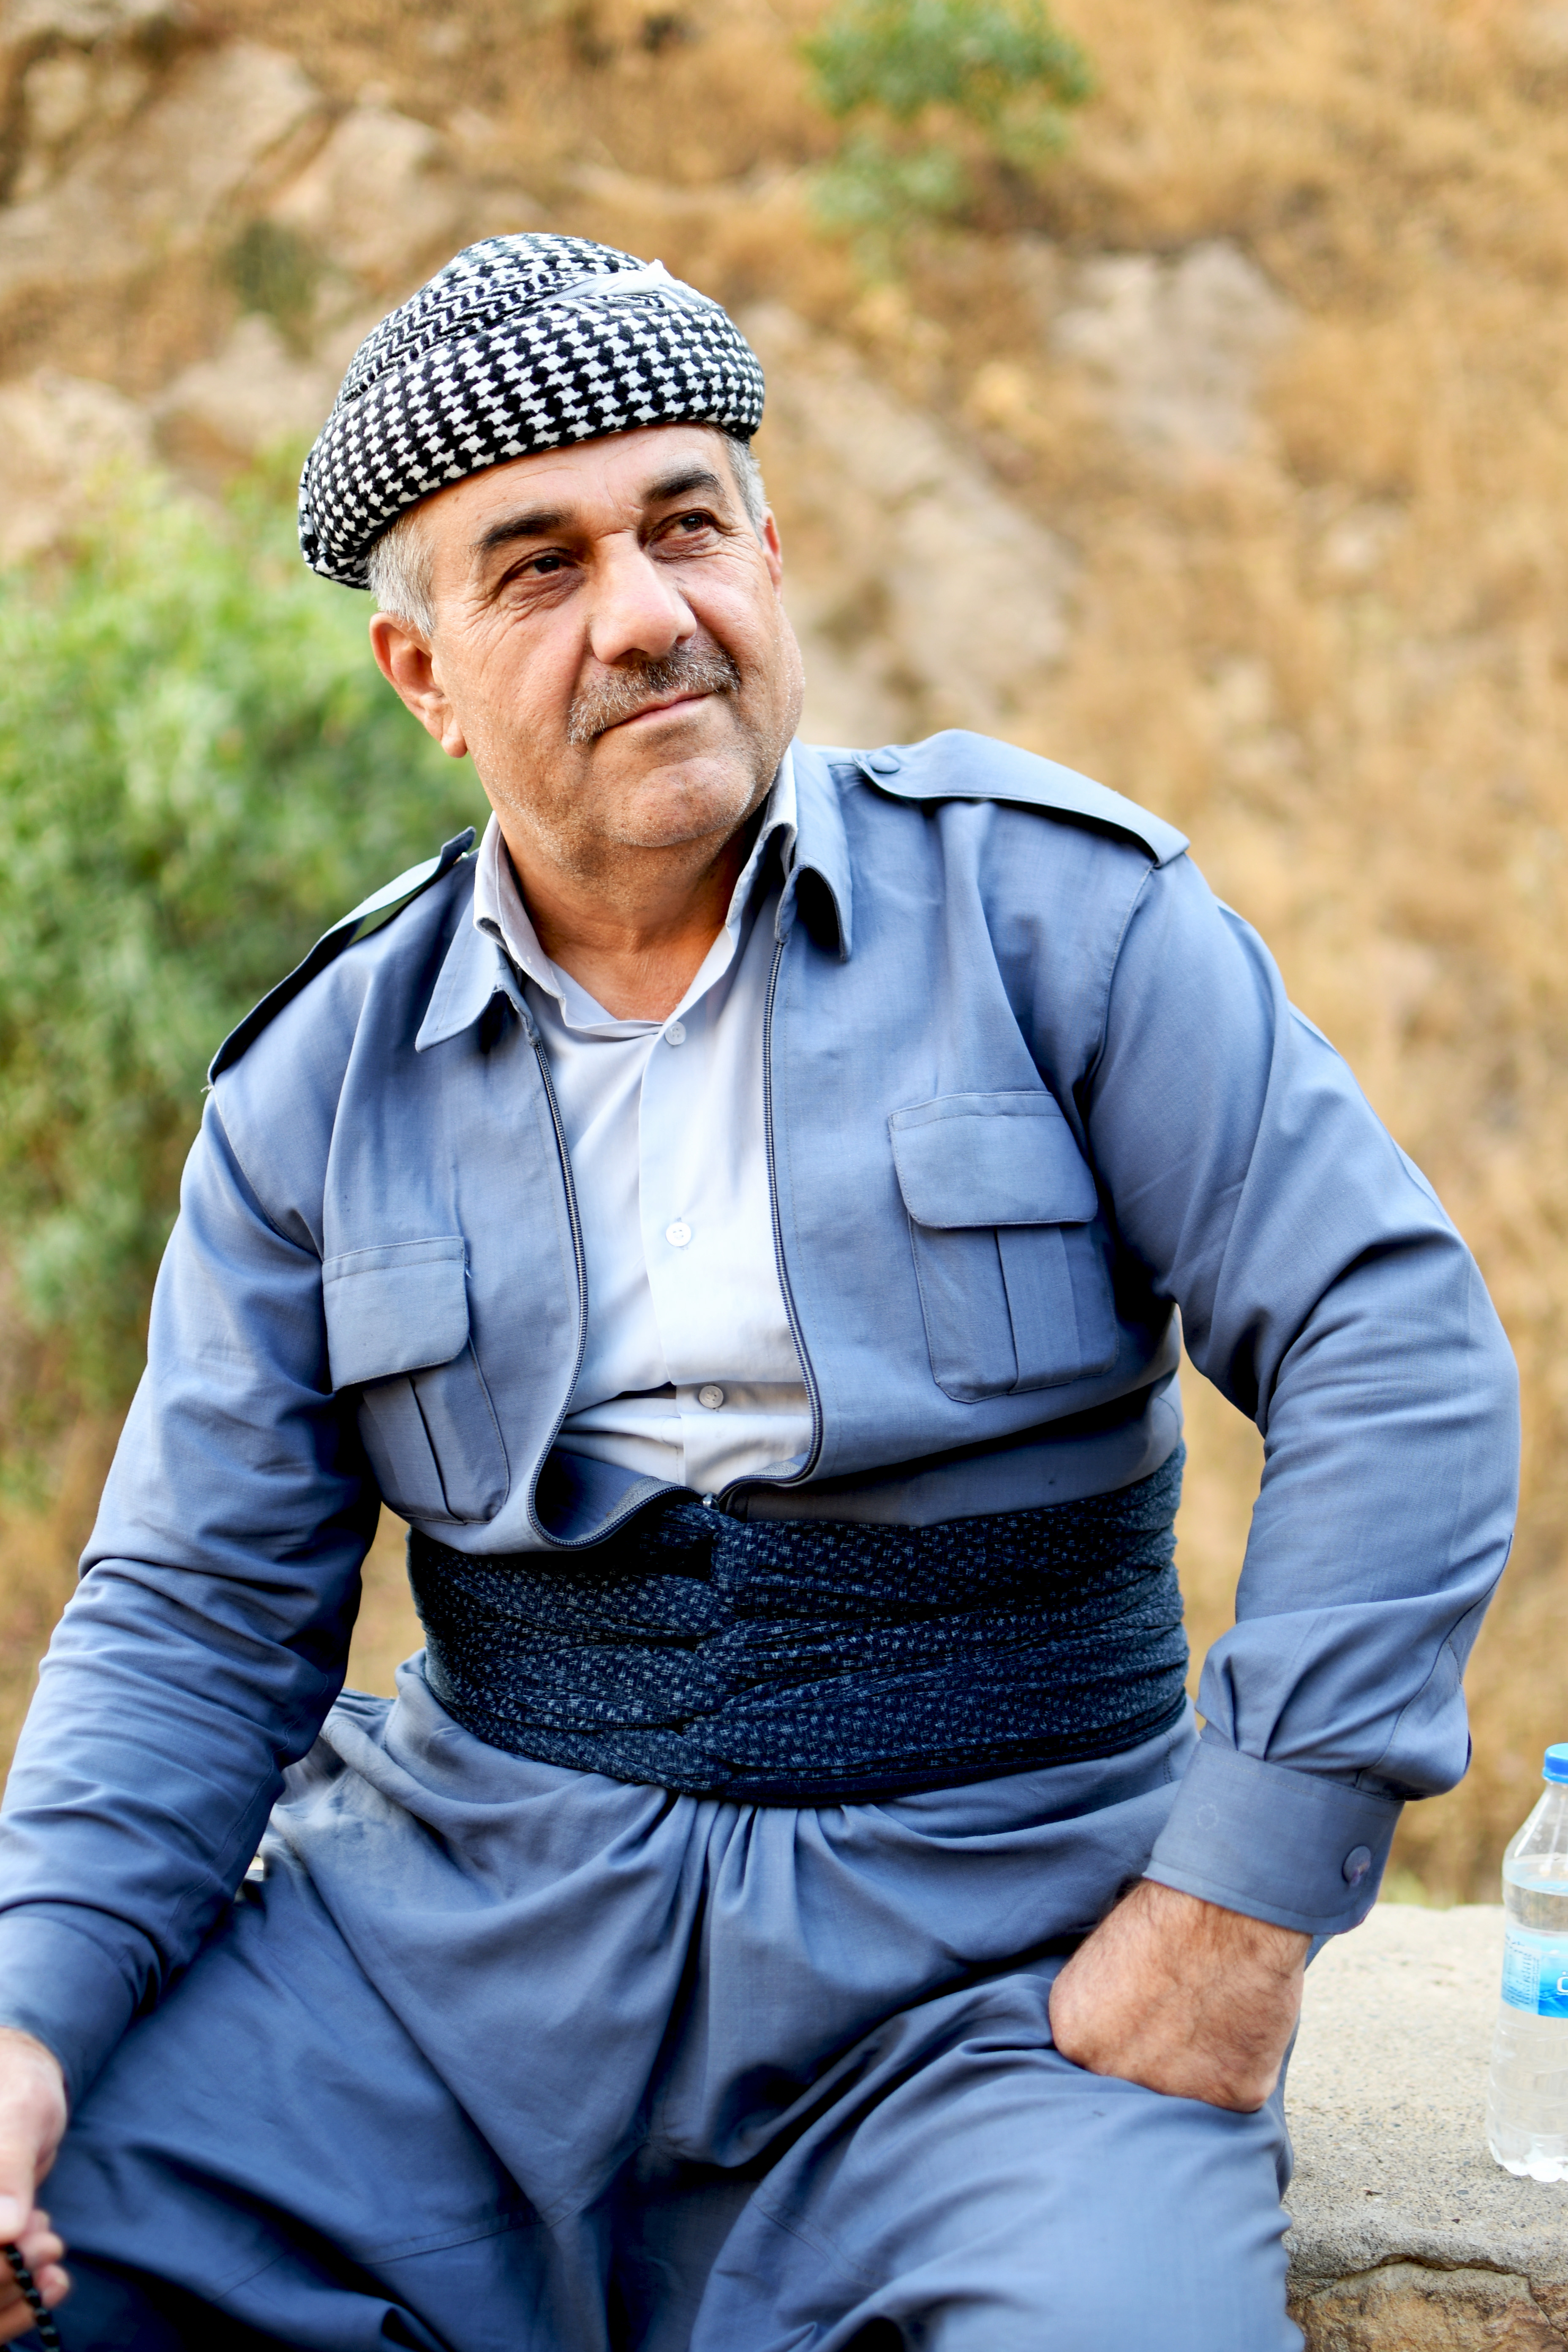 ANJCI ALL OVER | Journey through Iraqi Kurdistan in 40 photos